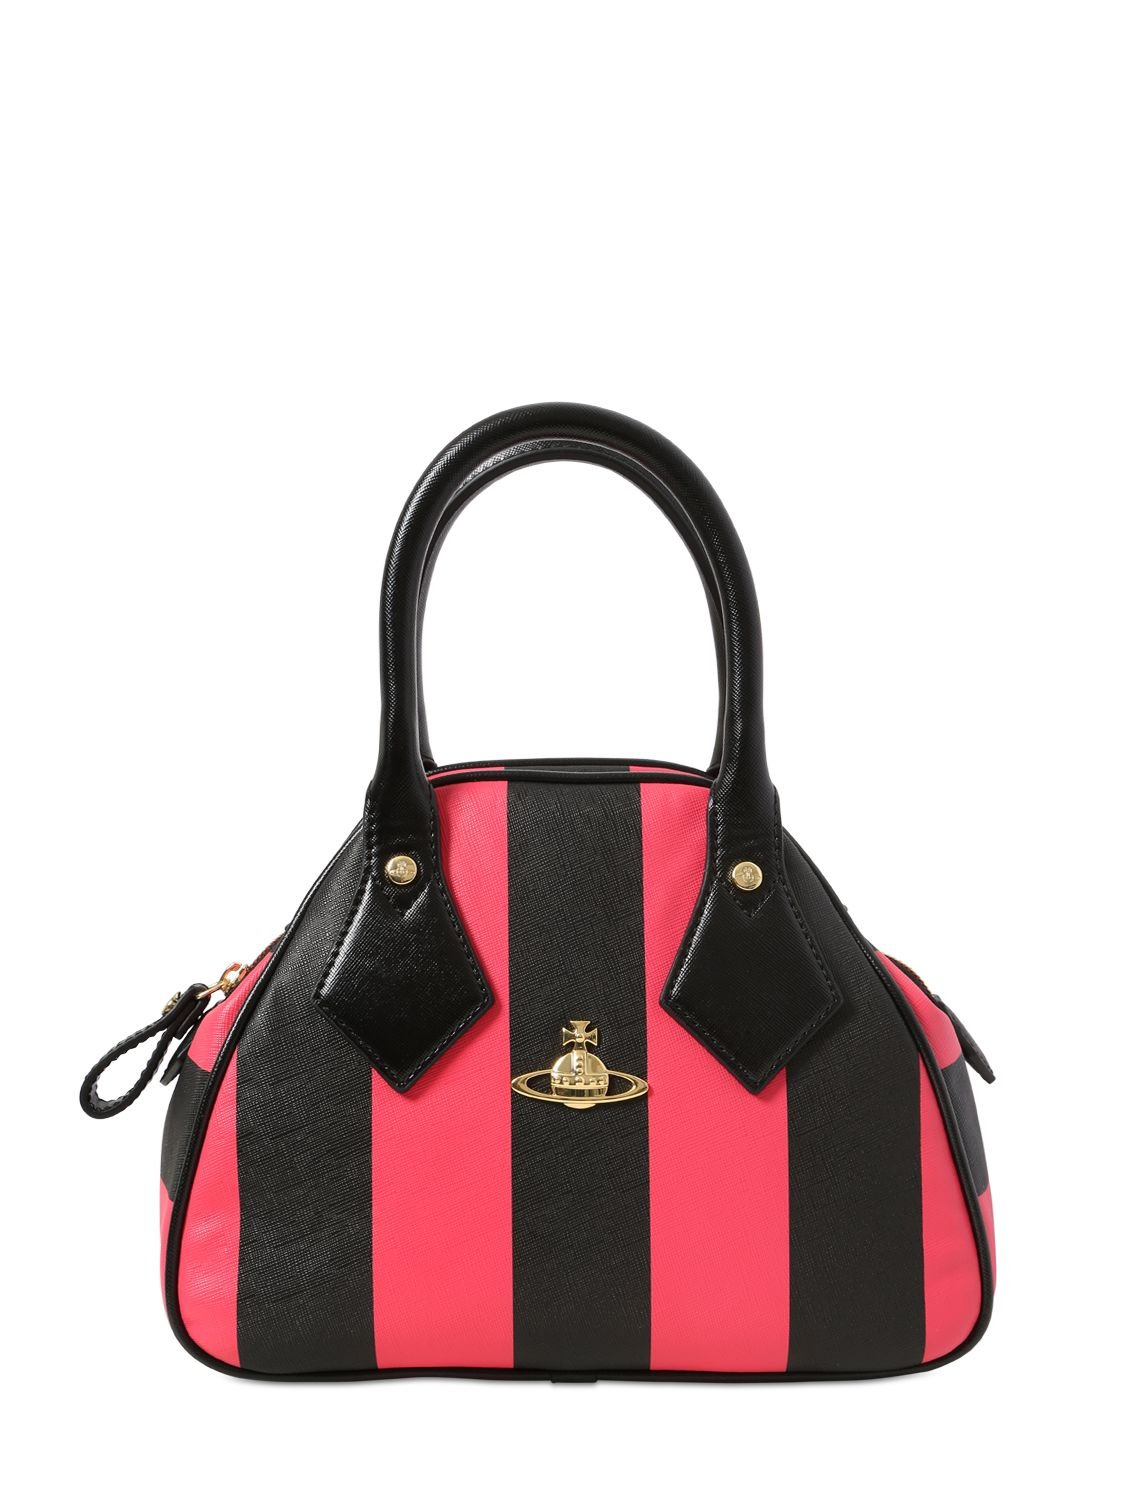 Vivienne Westwood Santa Monica Striped Faux Leather Bag In